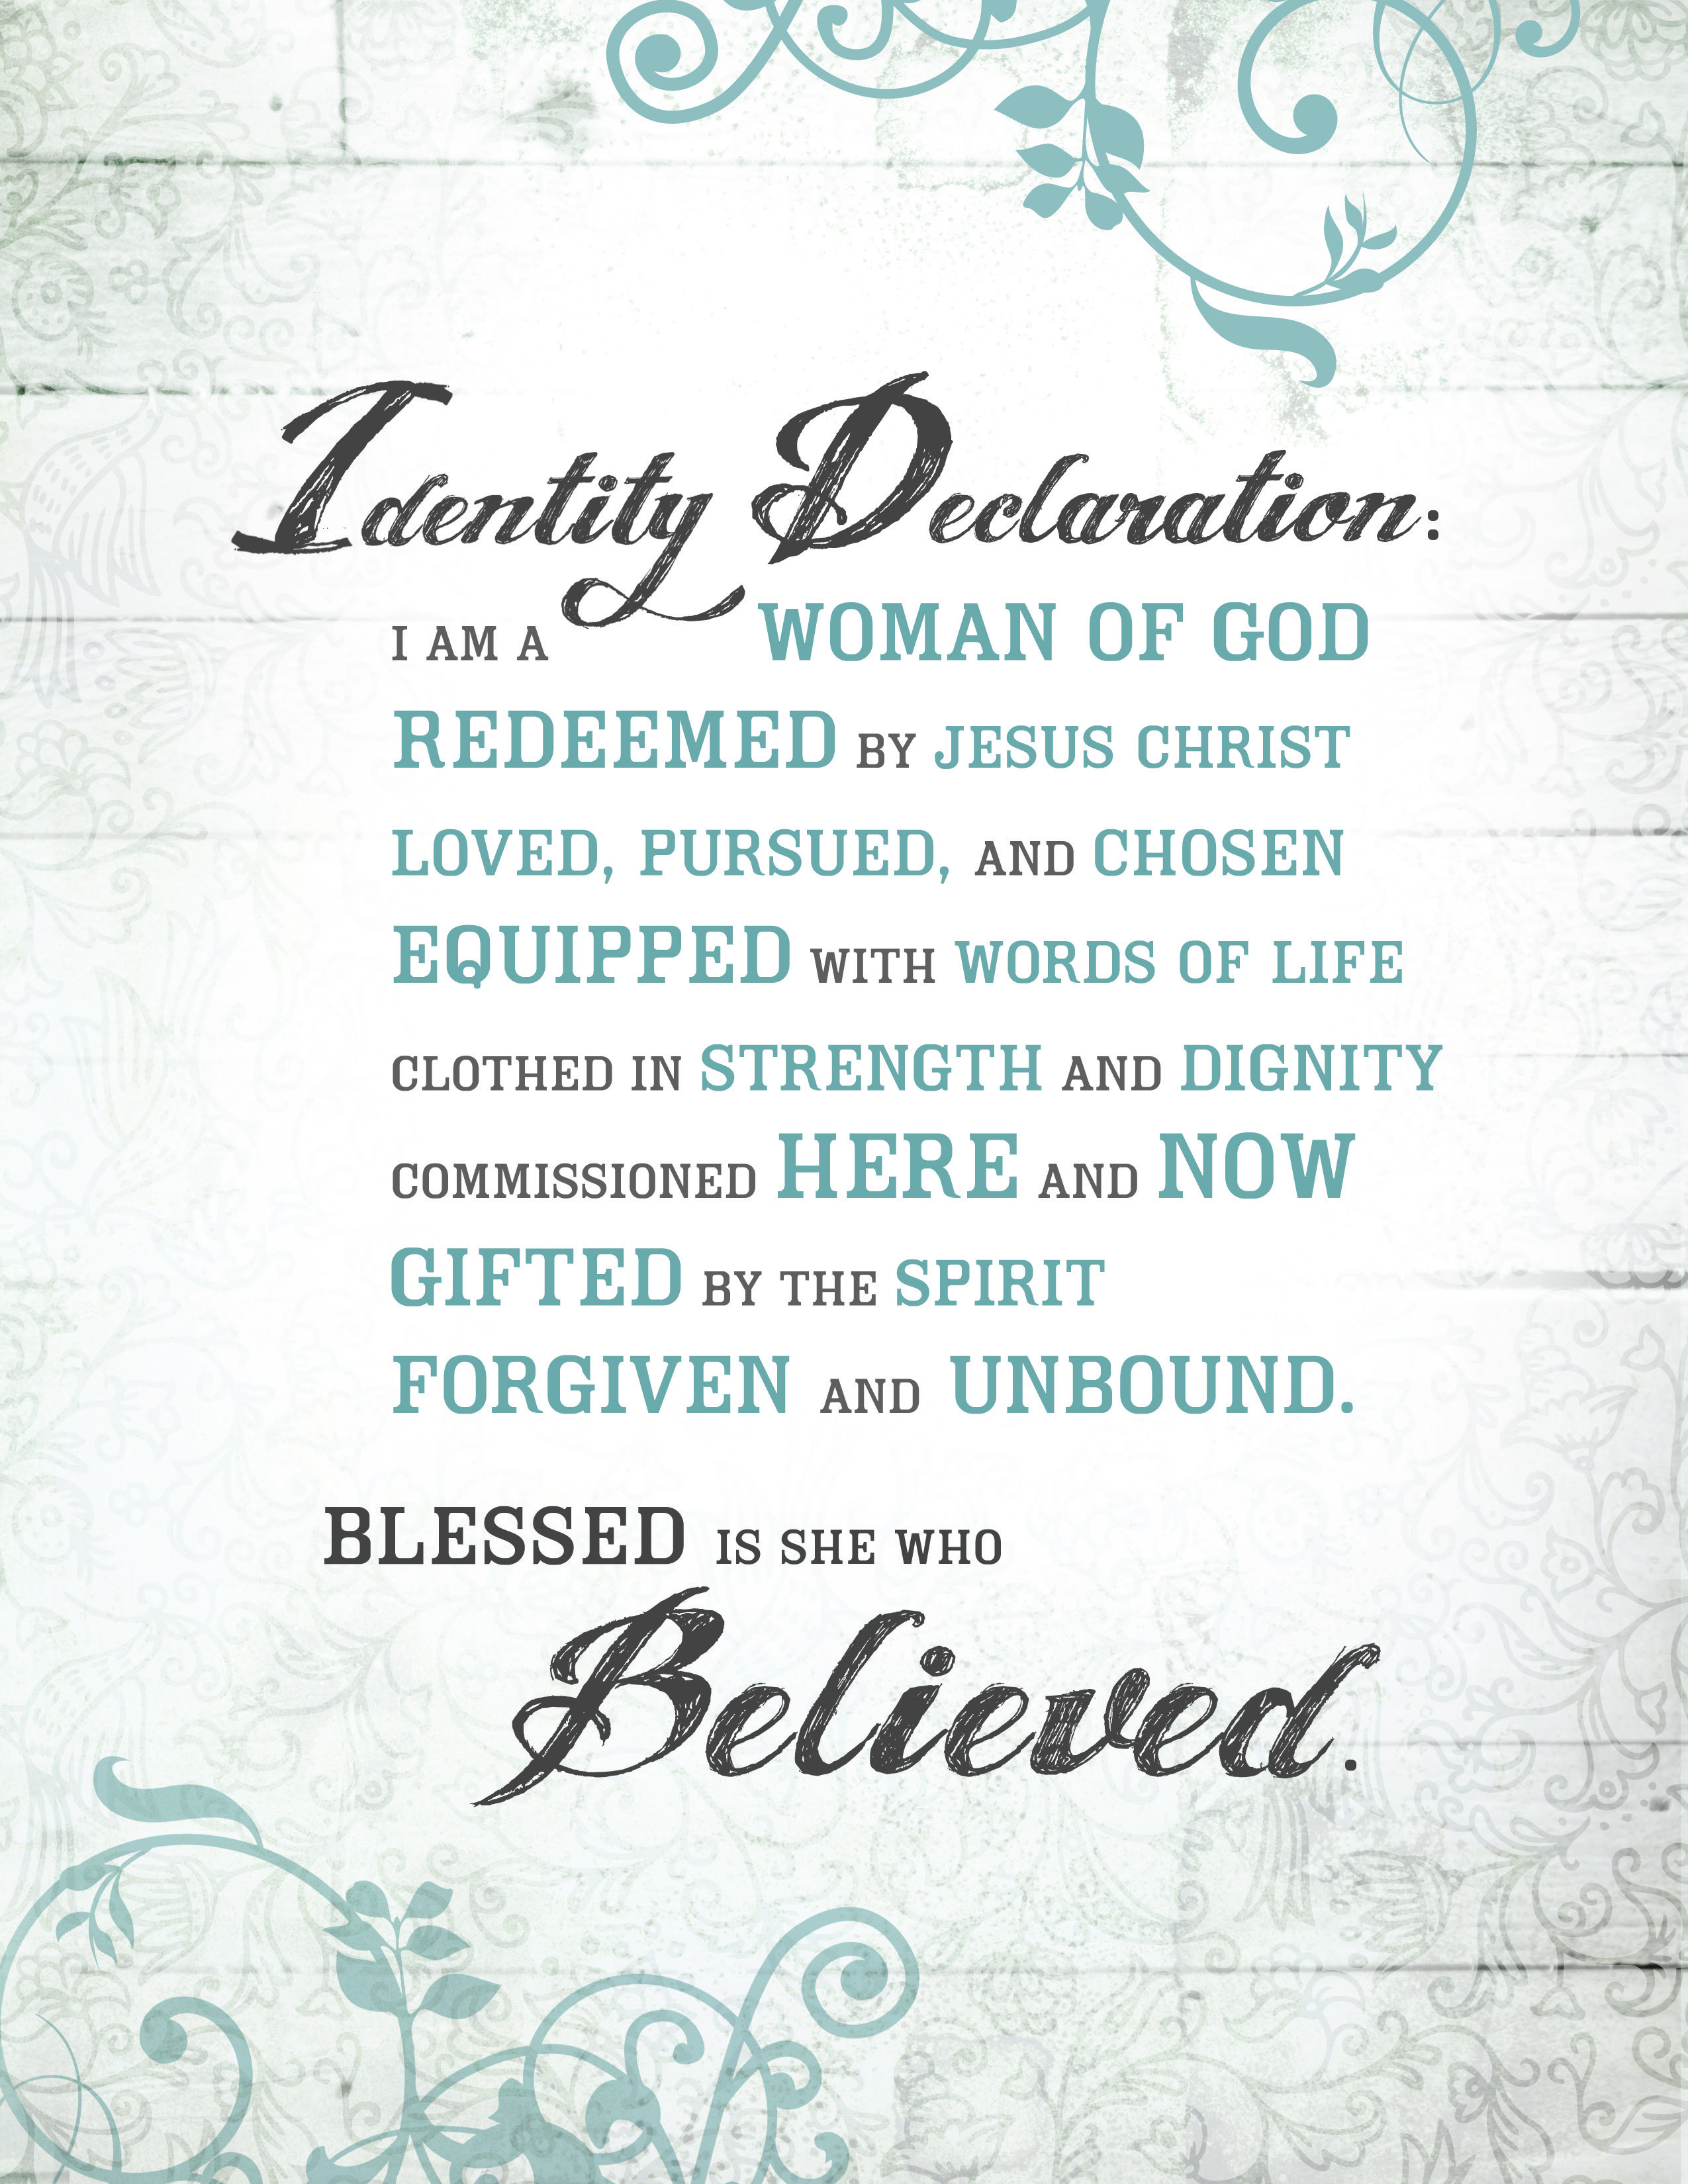 for a Woman of God